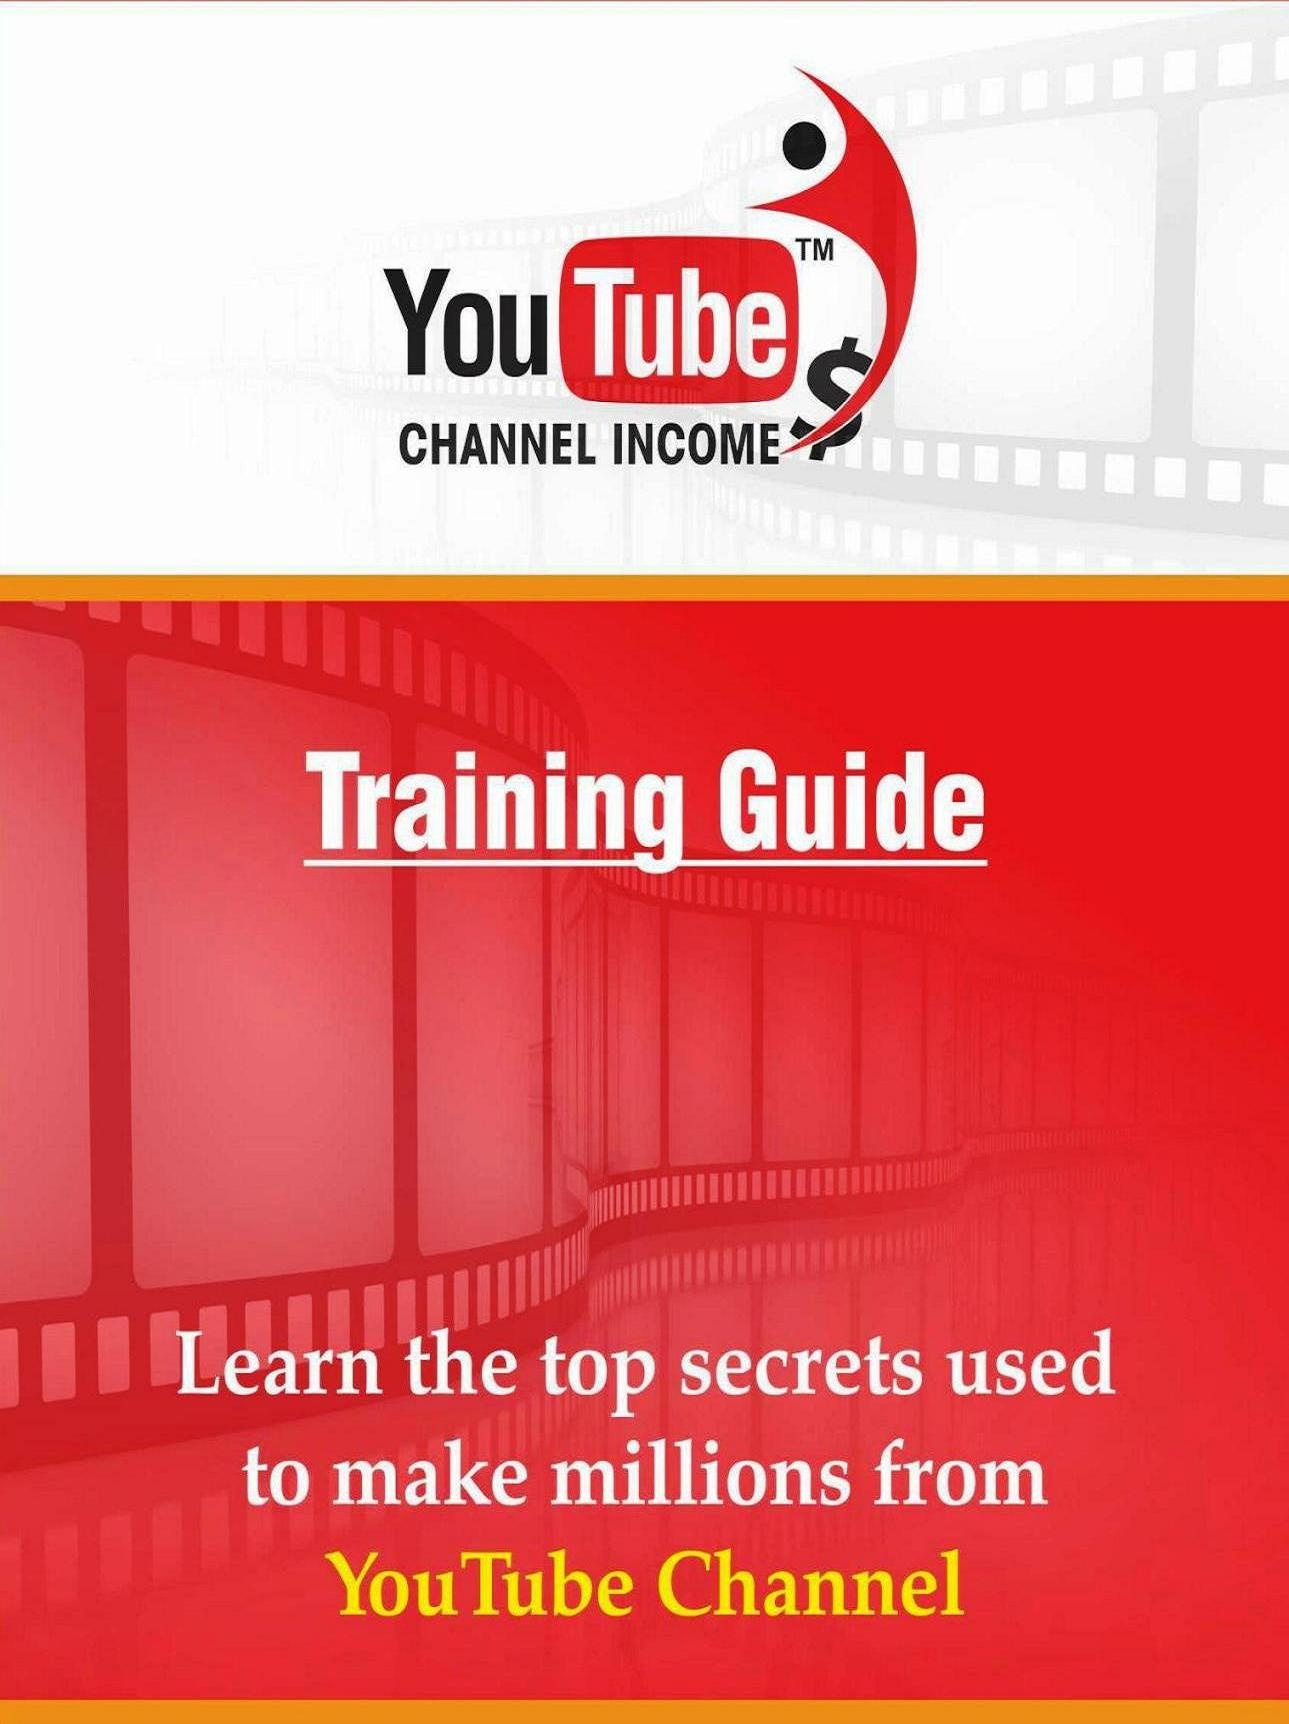 Youtube Channel Income - Training Guide - Top secrets  used to make millions from YouTube Channel